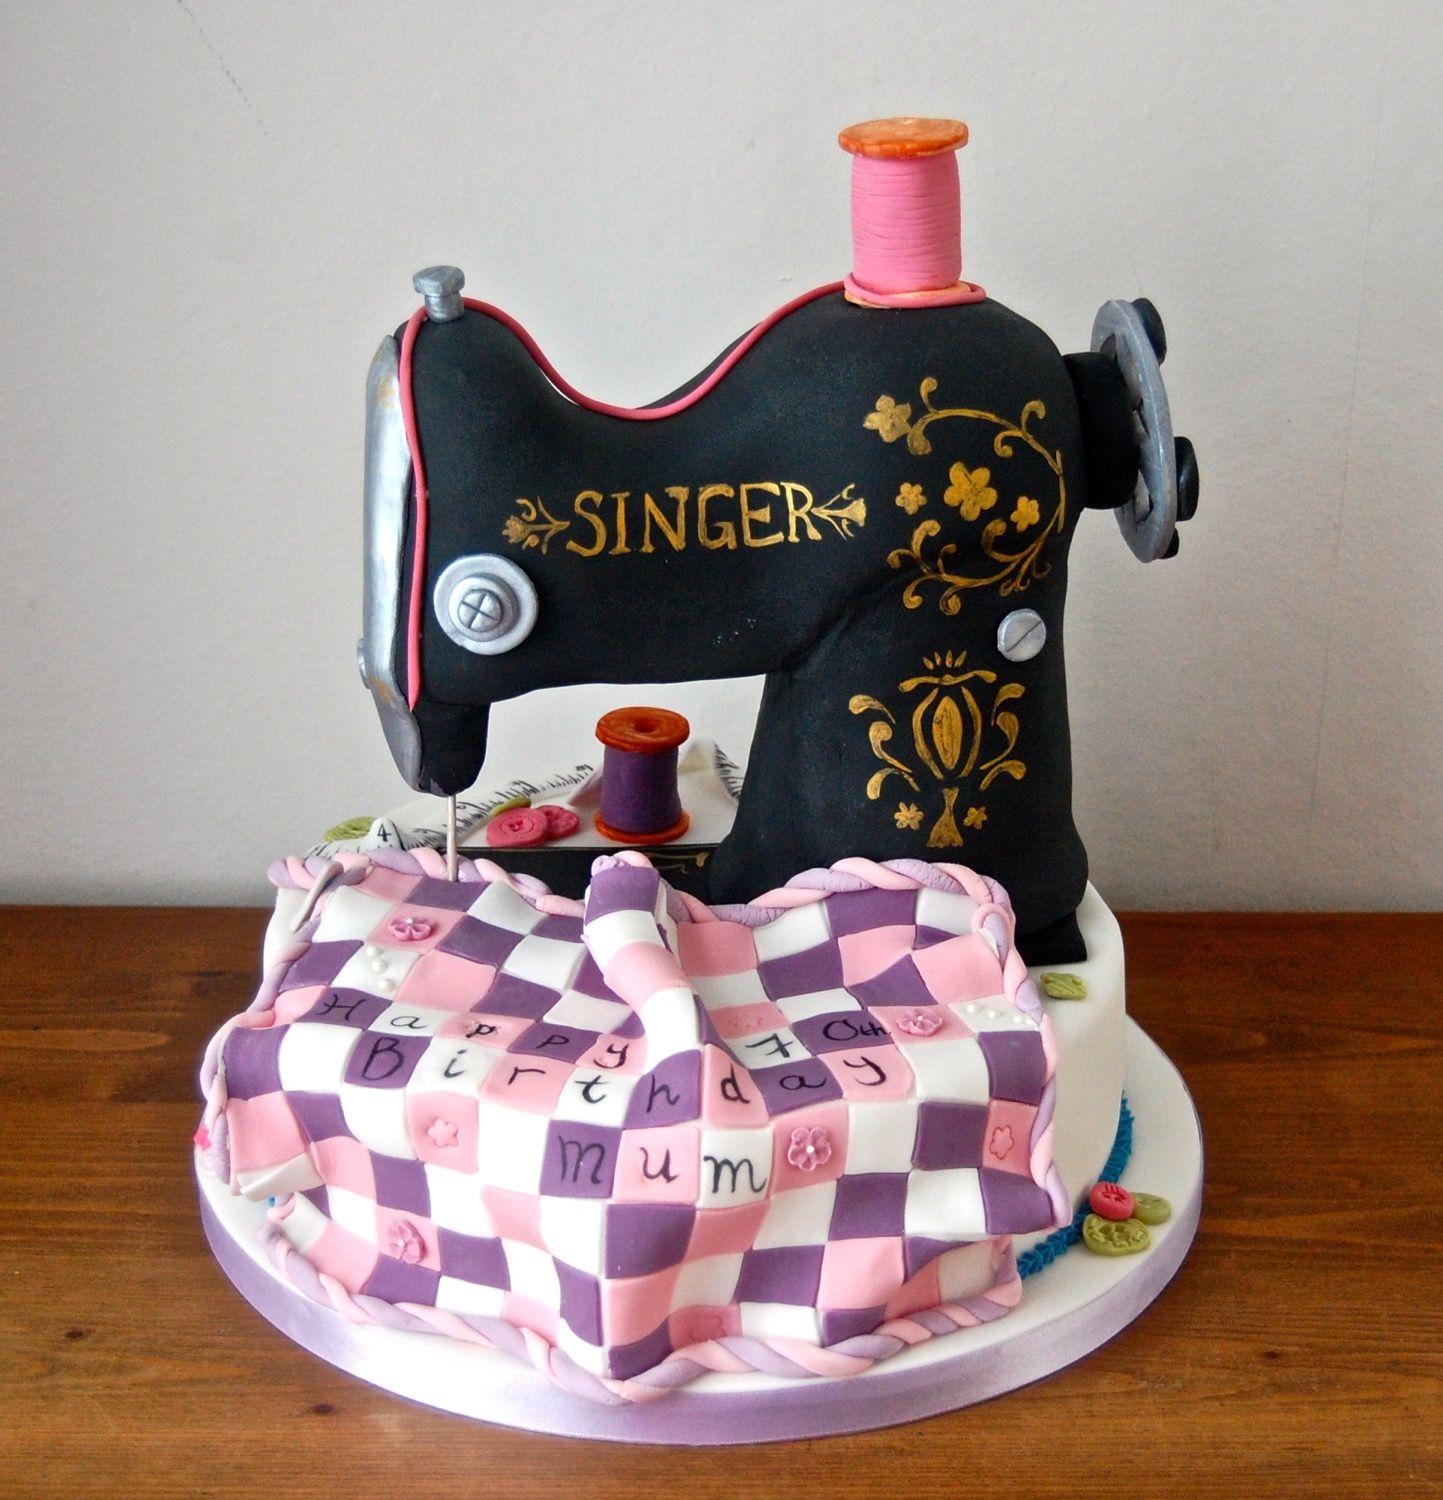 A traditional Singer sowing machine birthday cake Bakery